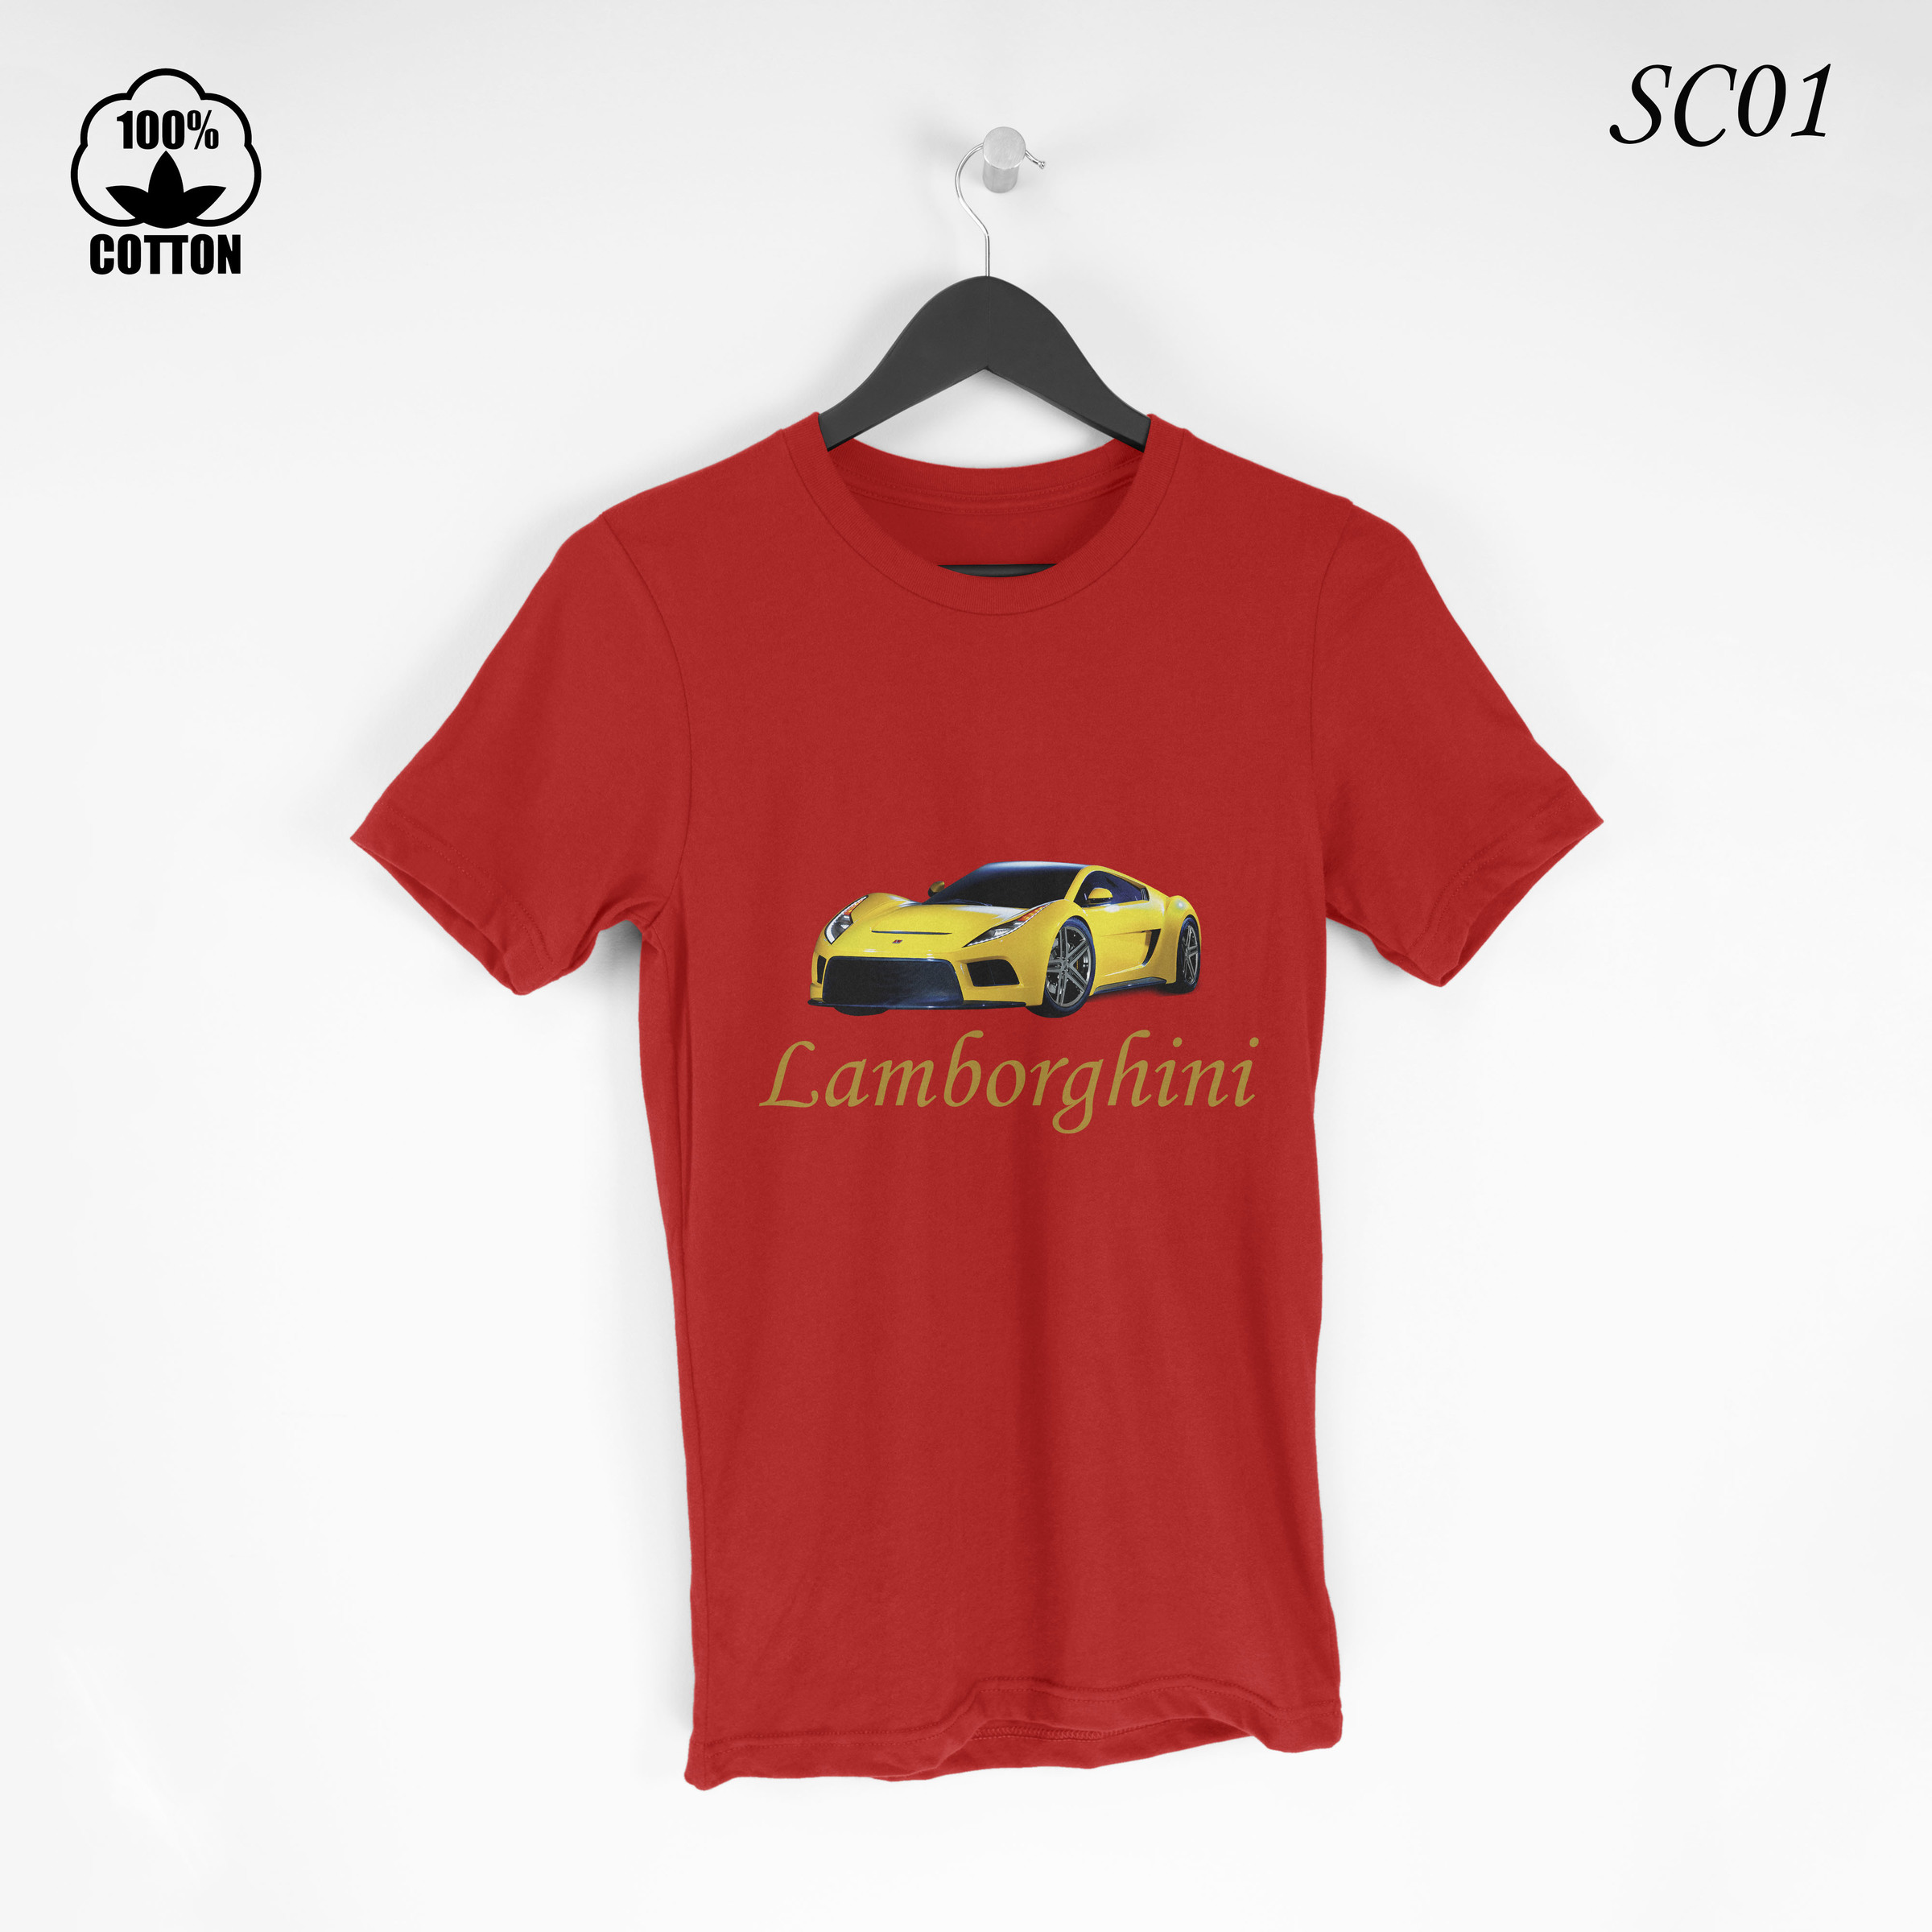 SC01.NEW DESIGN Lamborgini Car TShirt men's 9.jpg